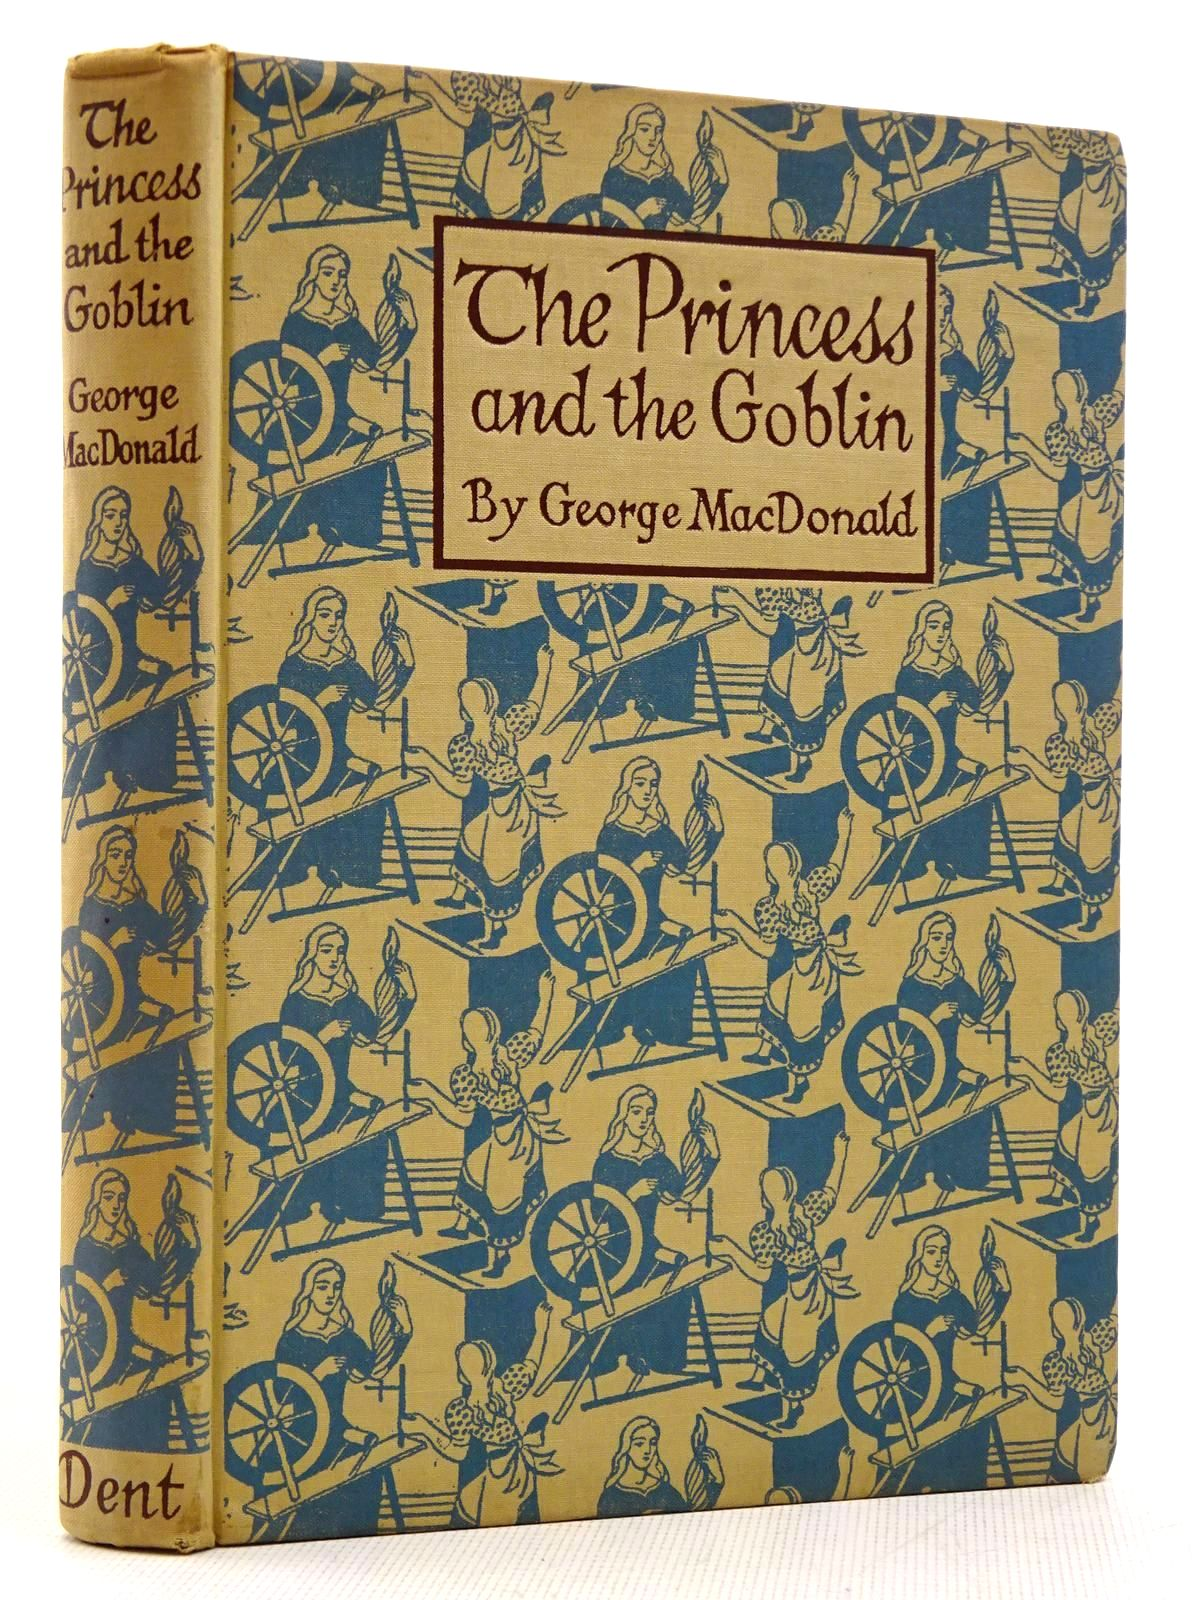 Photo of THE PRINCESS AND THE GOBLIN written by MacDonald, George illustrated by Folkard, Charles published by J.M. Dent & Sons Ltd. (STOCK CODE: 2129163)  for sale by Stella & Rose's Books